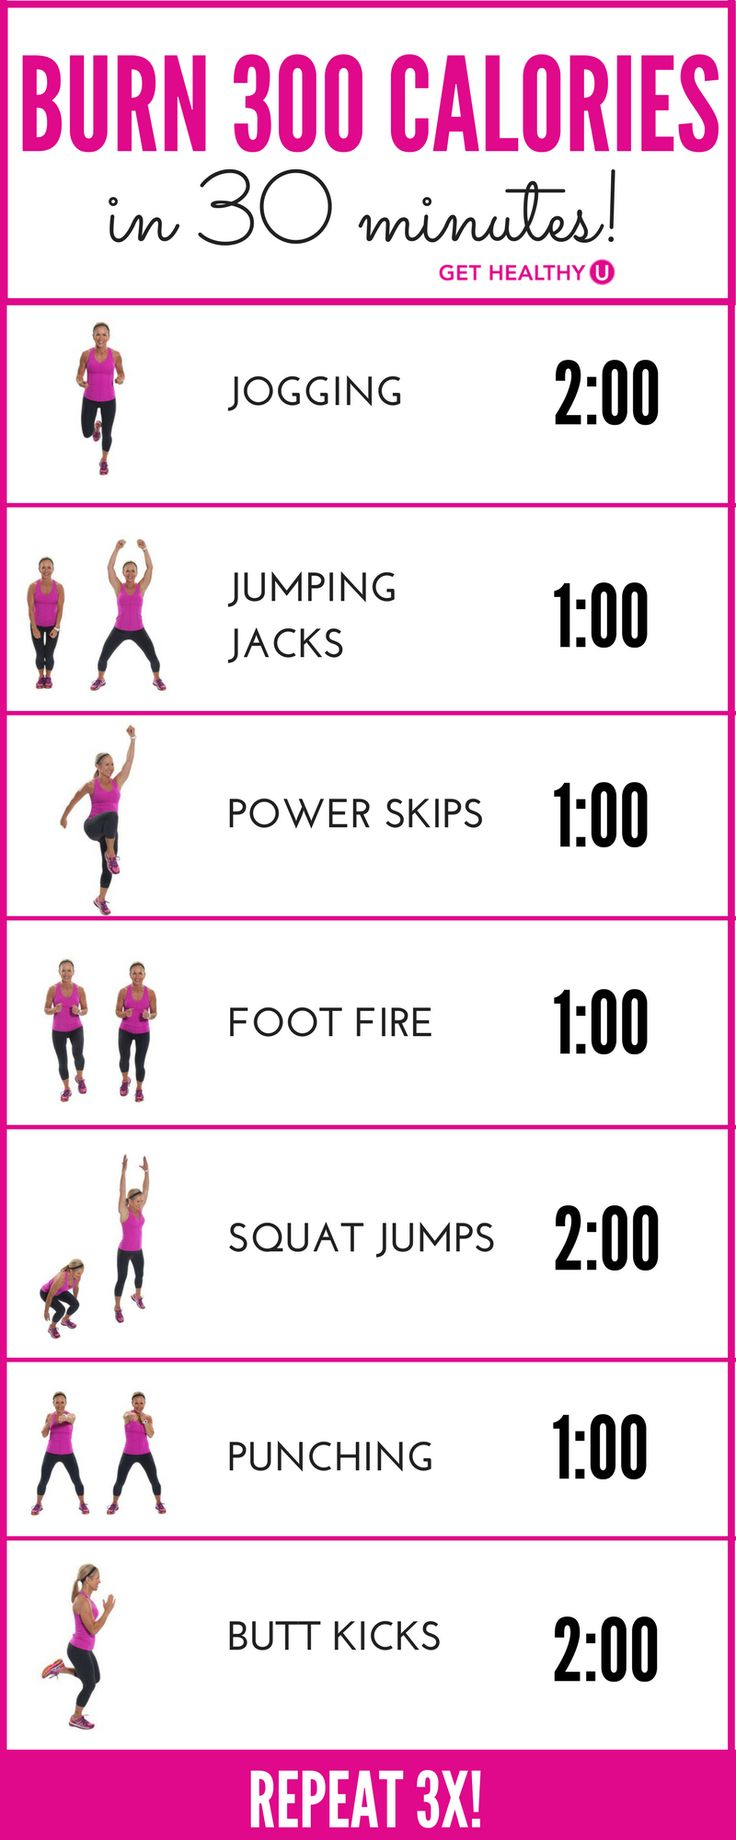 Best 25+ 30 minute hiit workout ideas on Pinterest | 30 ...